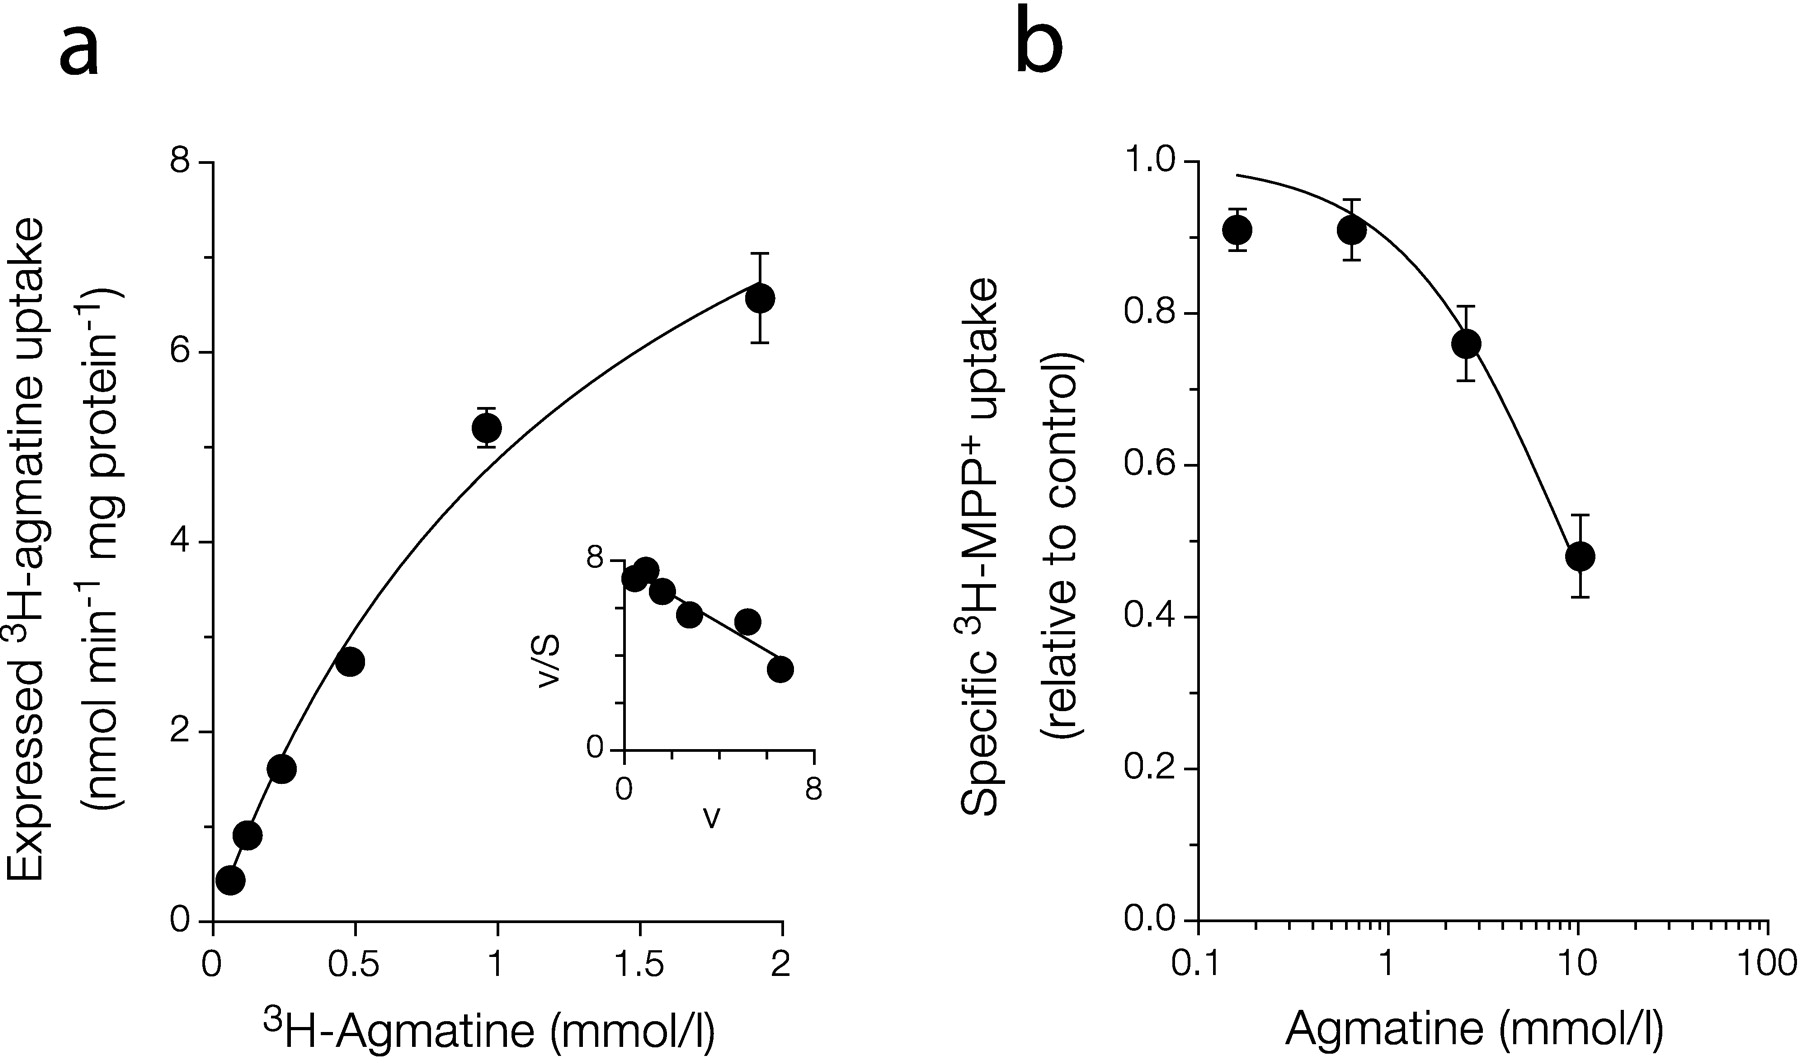 Agmatine Is Efficiently Transported by Non-Neuronal